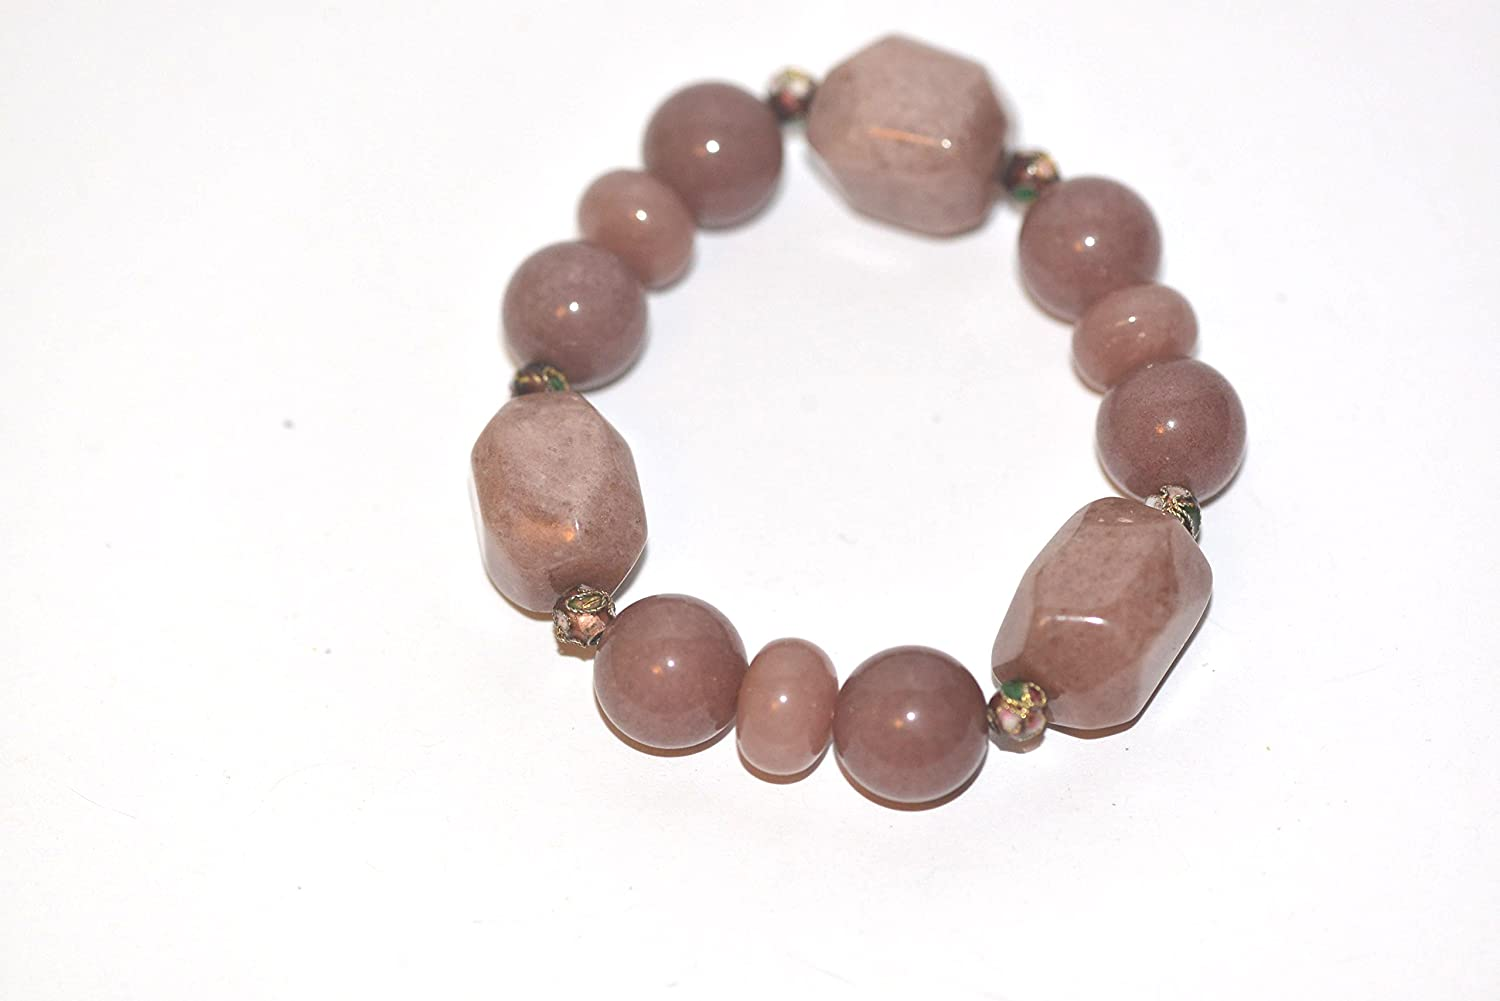 Natural Semi-Precious Stone Stretch Bracelet Bangle